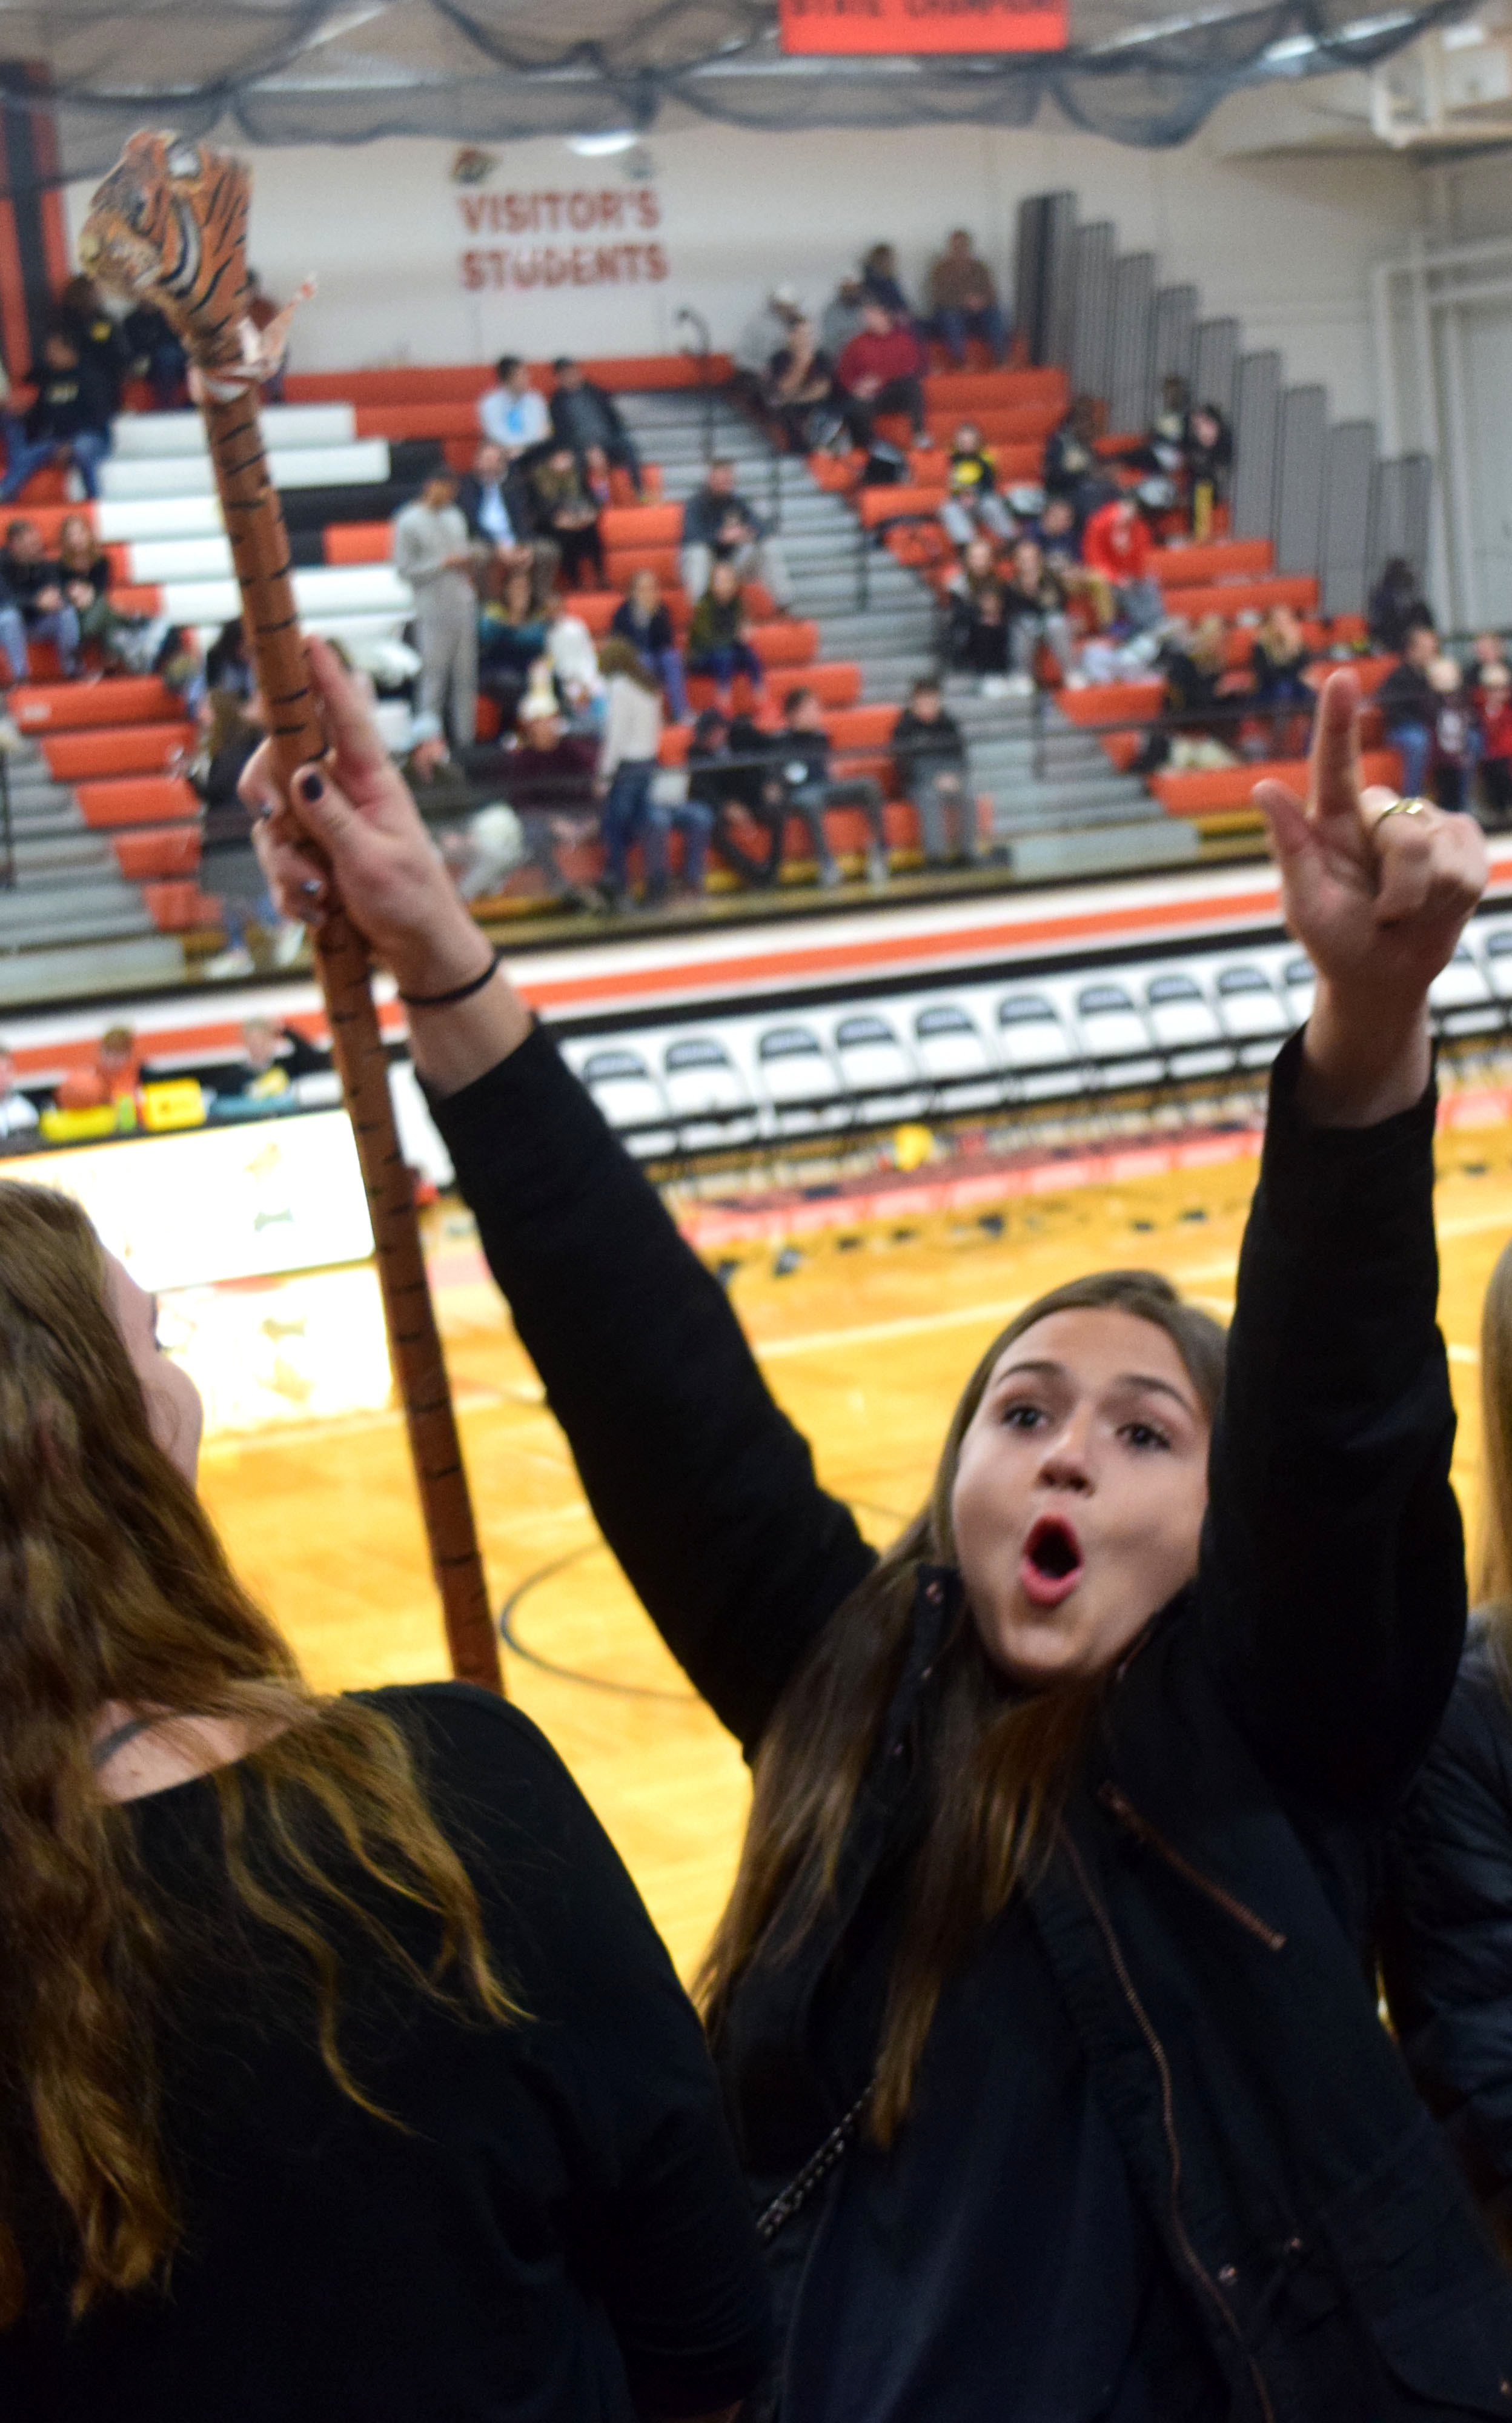 https://www.jostens.com/apps/store/productBrowse/1050254/Chagrin-Falls-High-School/2019-Yearbook/2018071404212920071/CATALOG_SHOP/